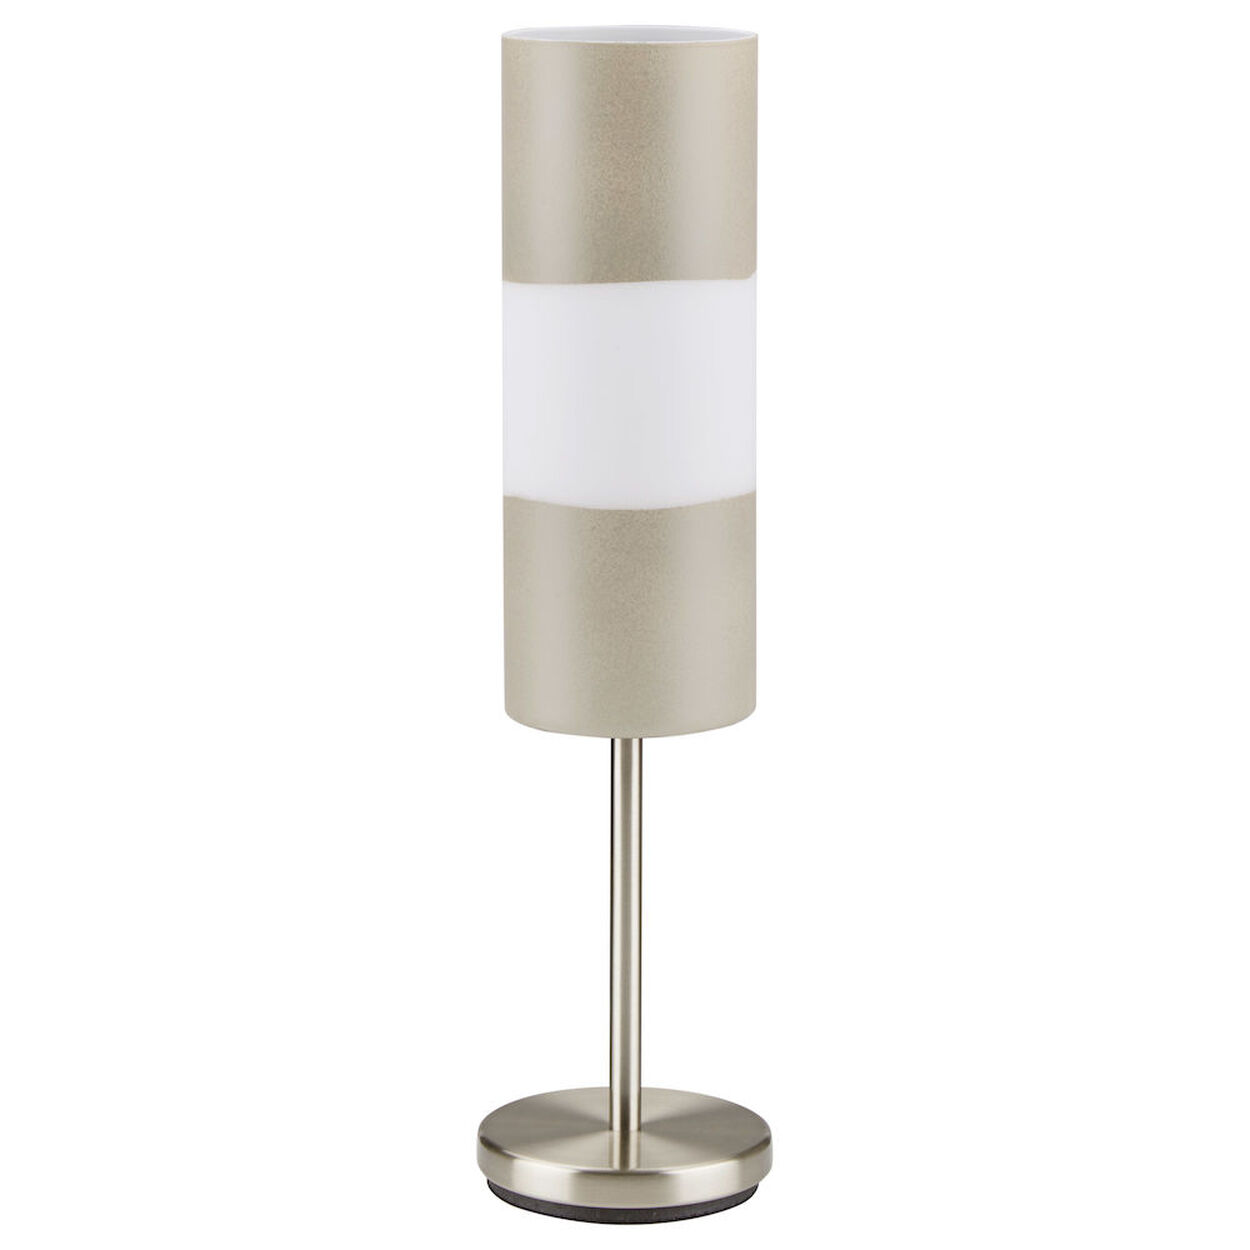 Cement Look Glass Table Lamp